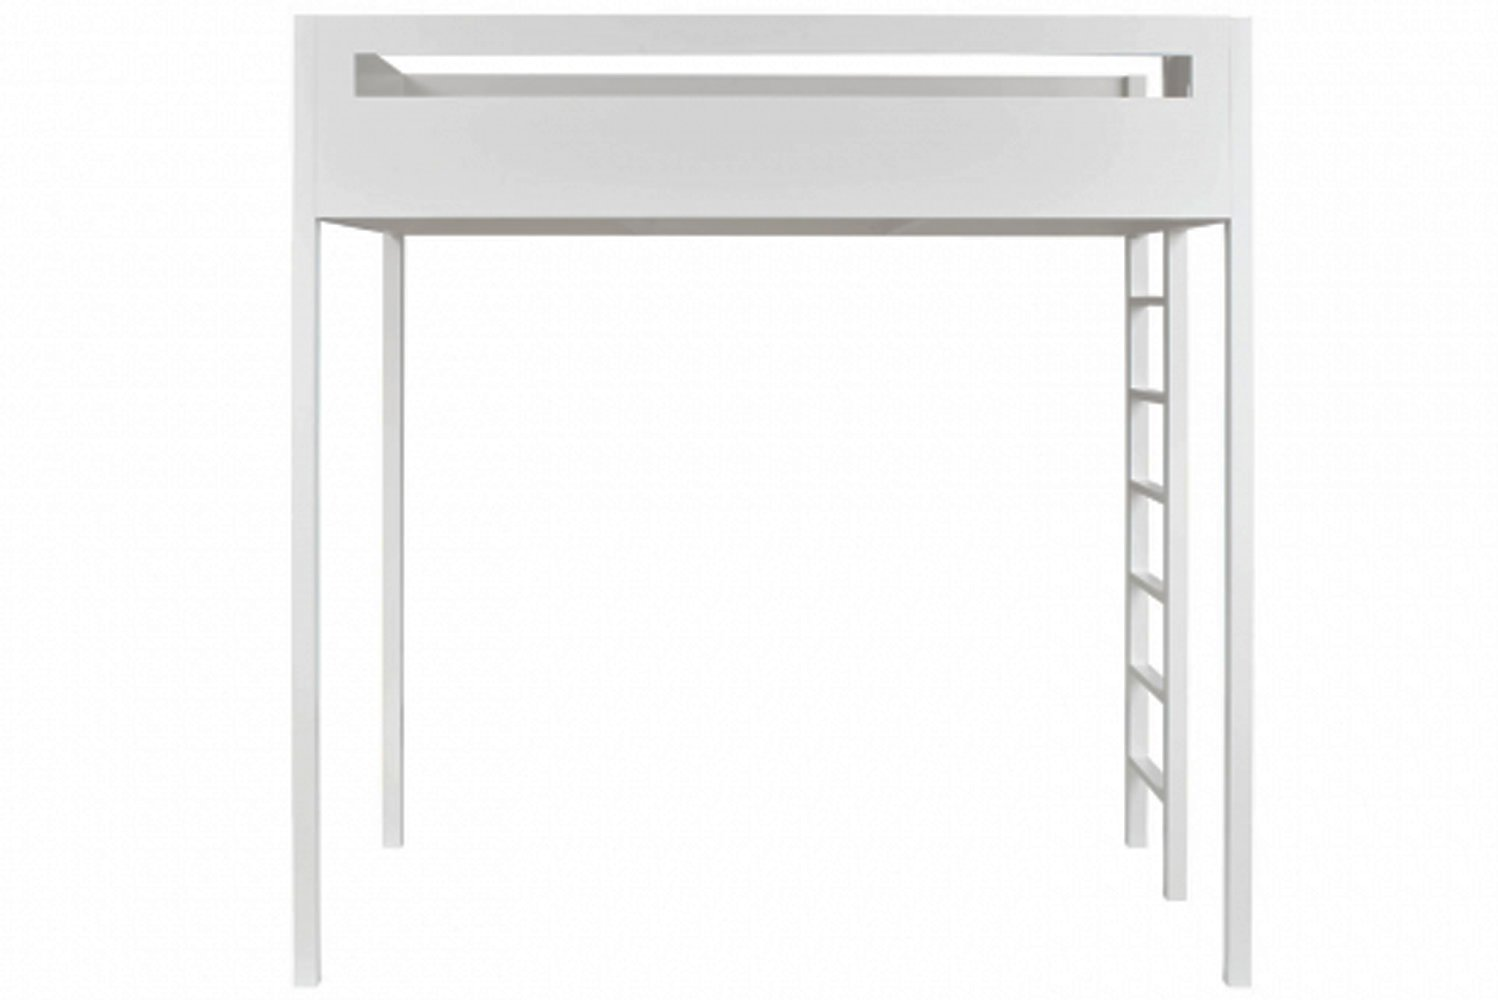 Urban Green launched the Thompson twin loft bed, which is made in Brooklyn with non-toxic materials and nonallergenic finishes.